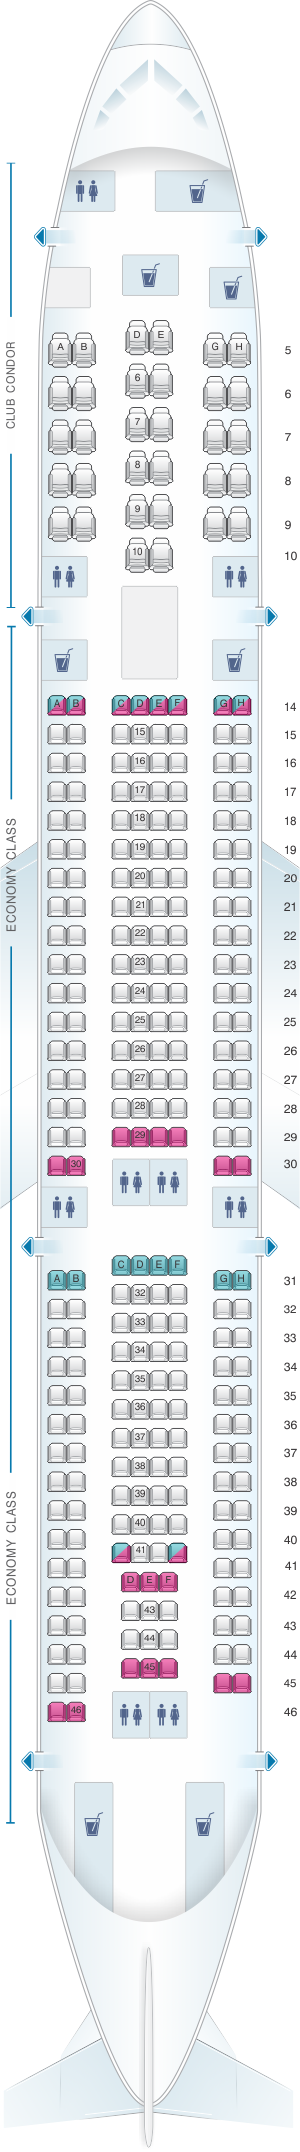 Seat map for Aerolineas Argentinas Airbus A340 300